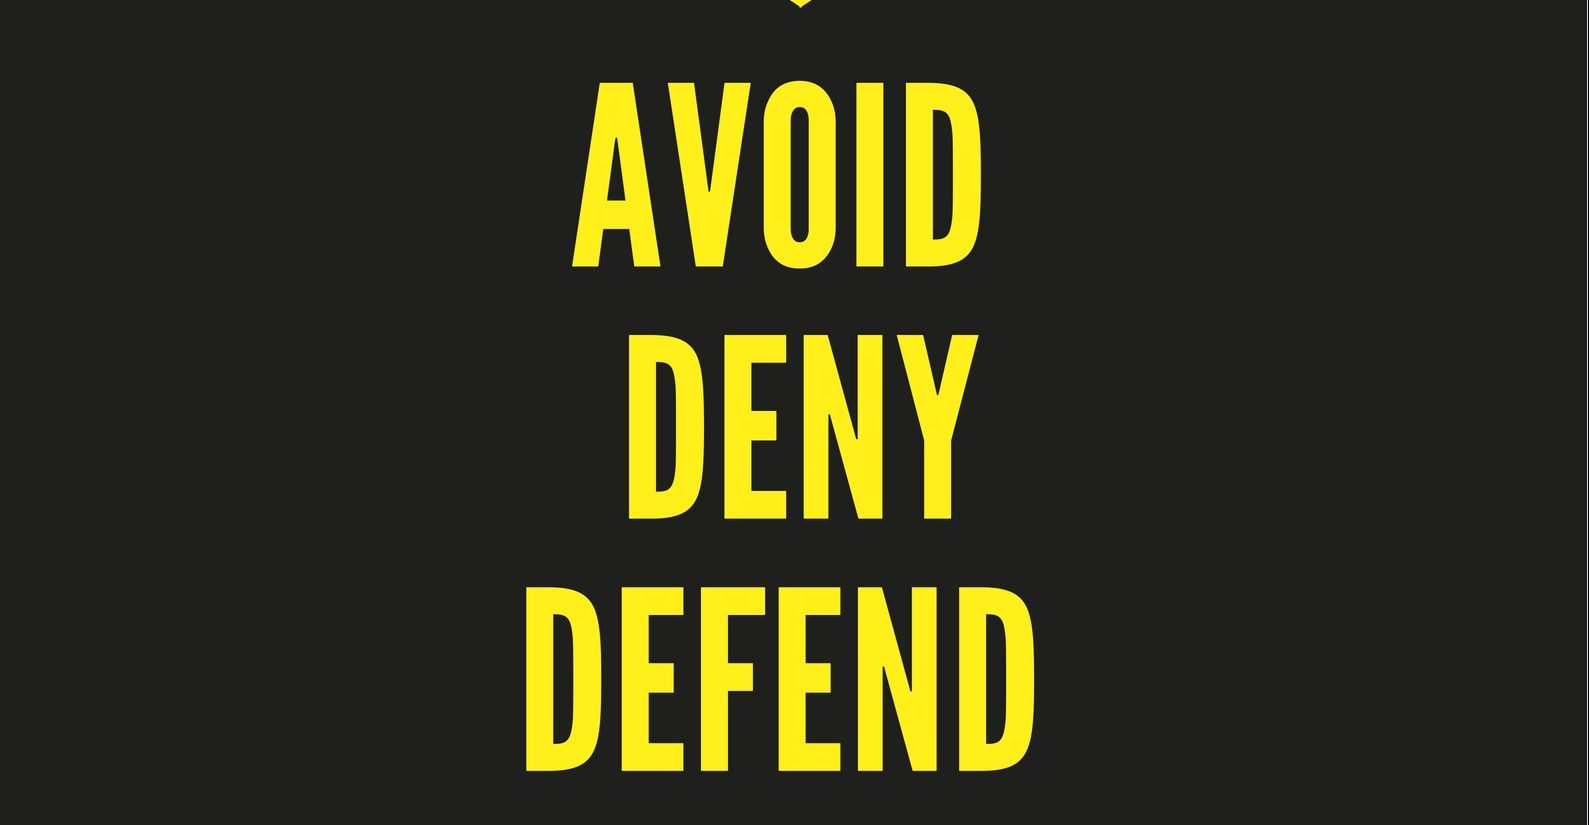 AVOID DENY DEFEND